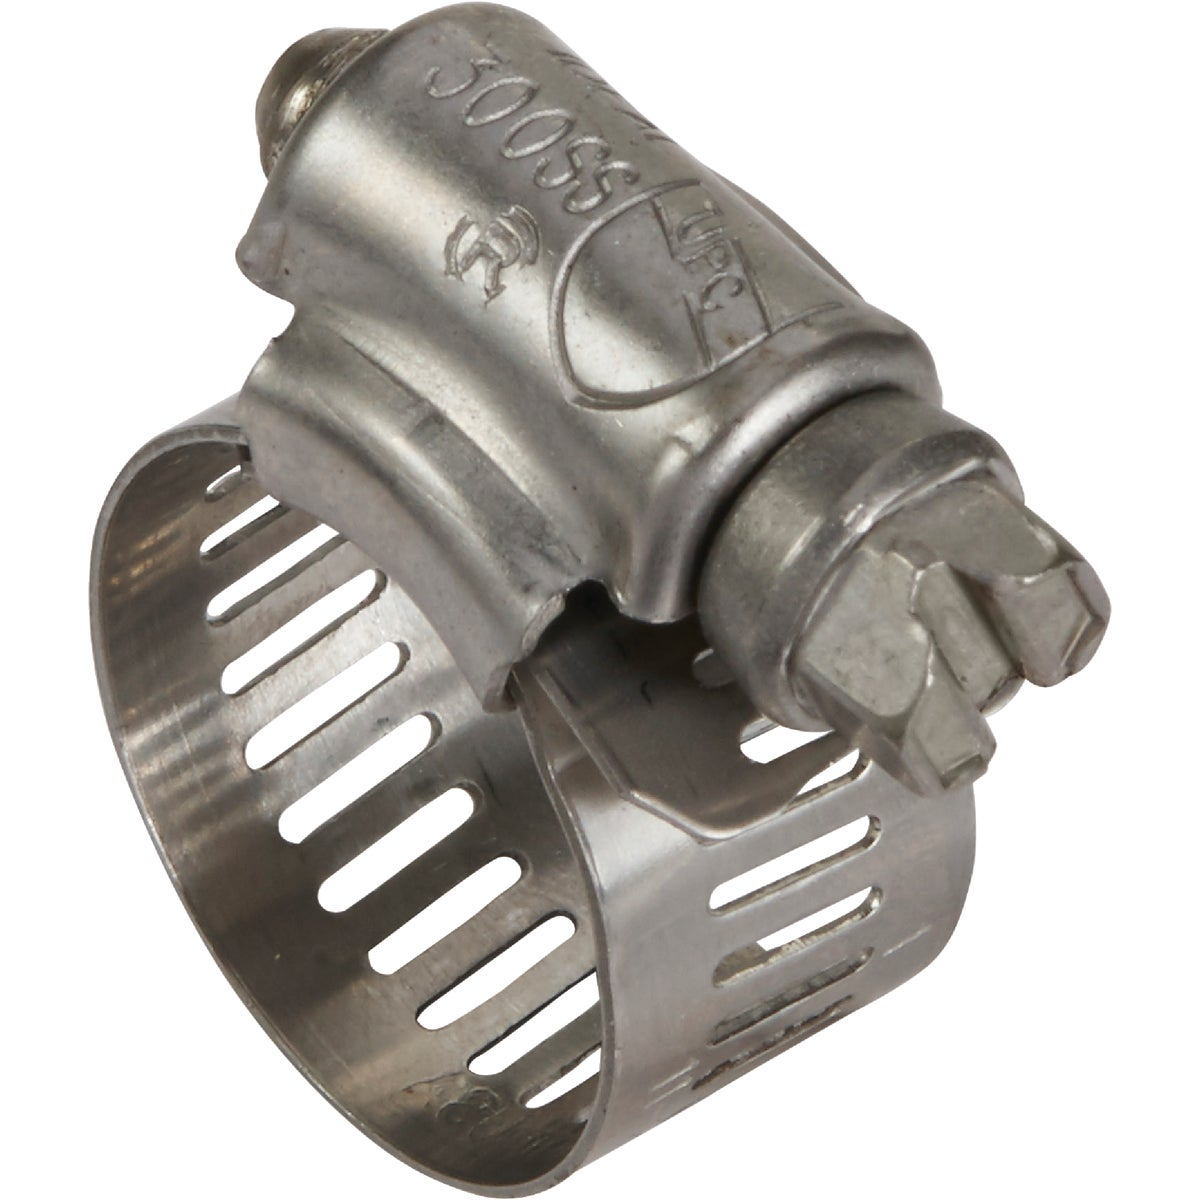 7/16-1 SS CLAMP - 6308053 by Ideal Corp